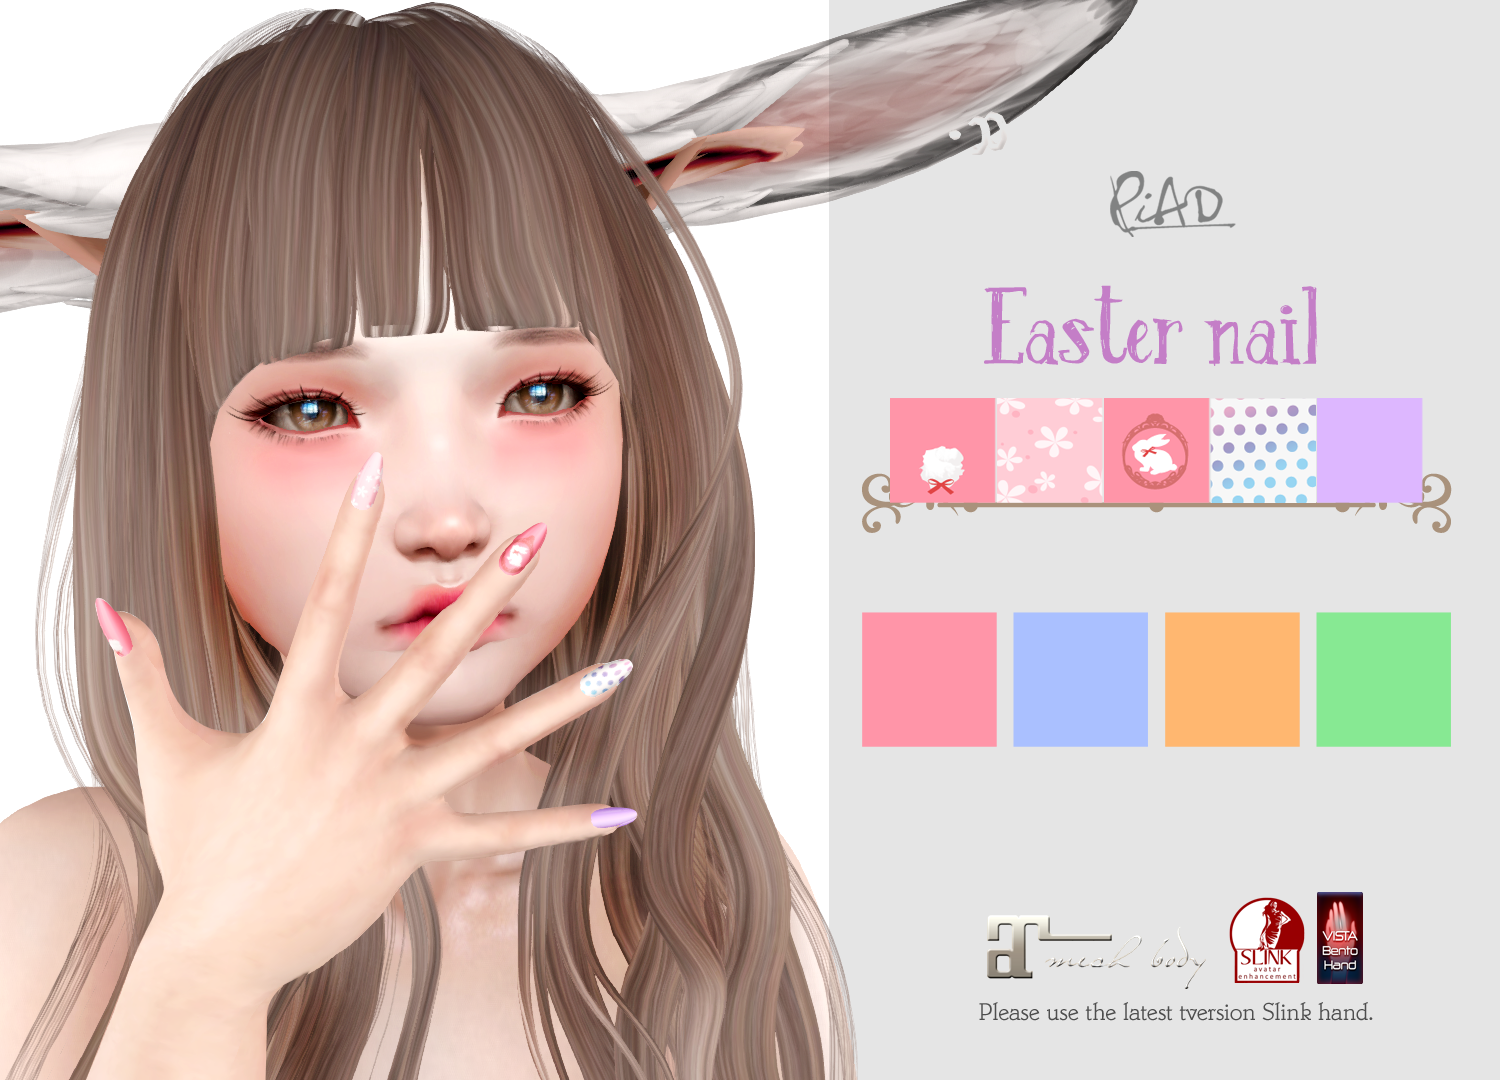 [PiAD] Easter nail.png